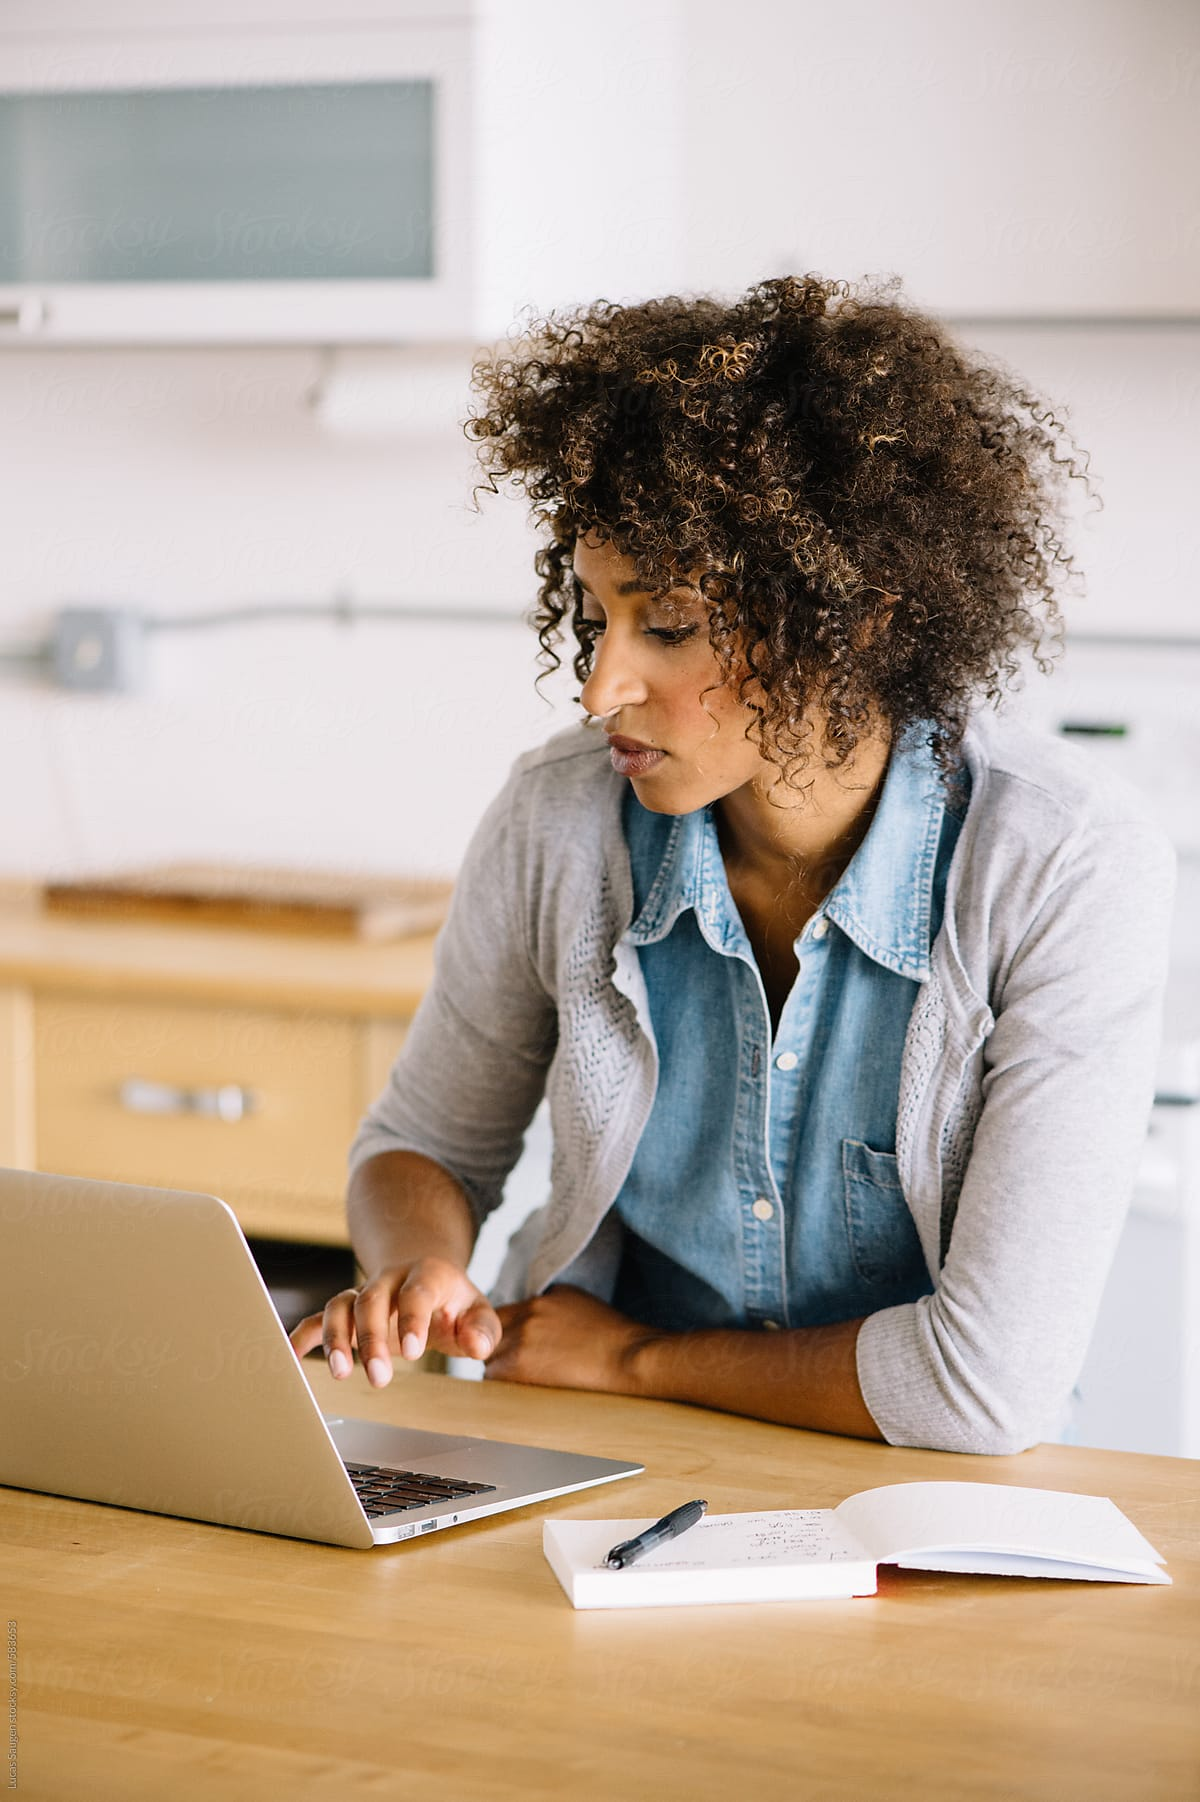 mage-woman-using-laptop-with-notebook-beside-her-employee-retention